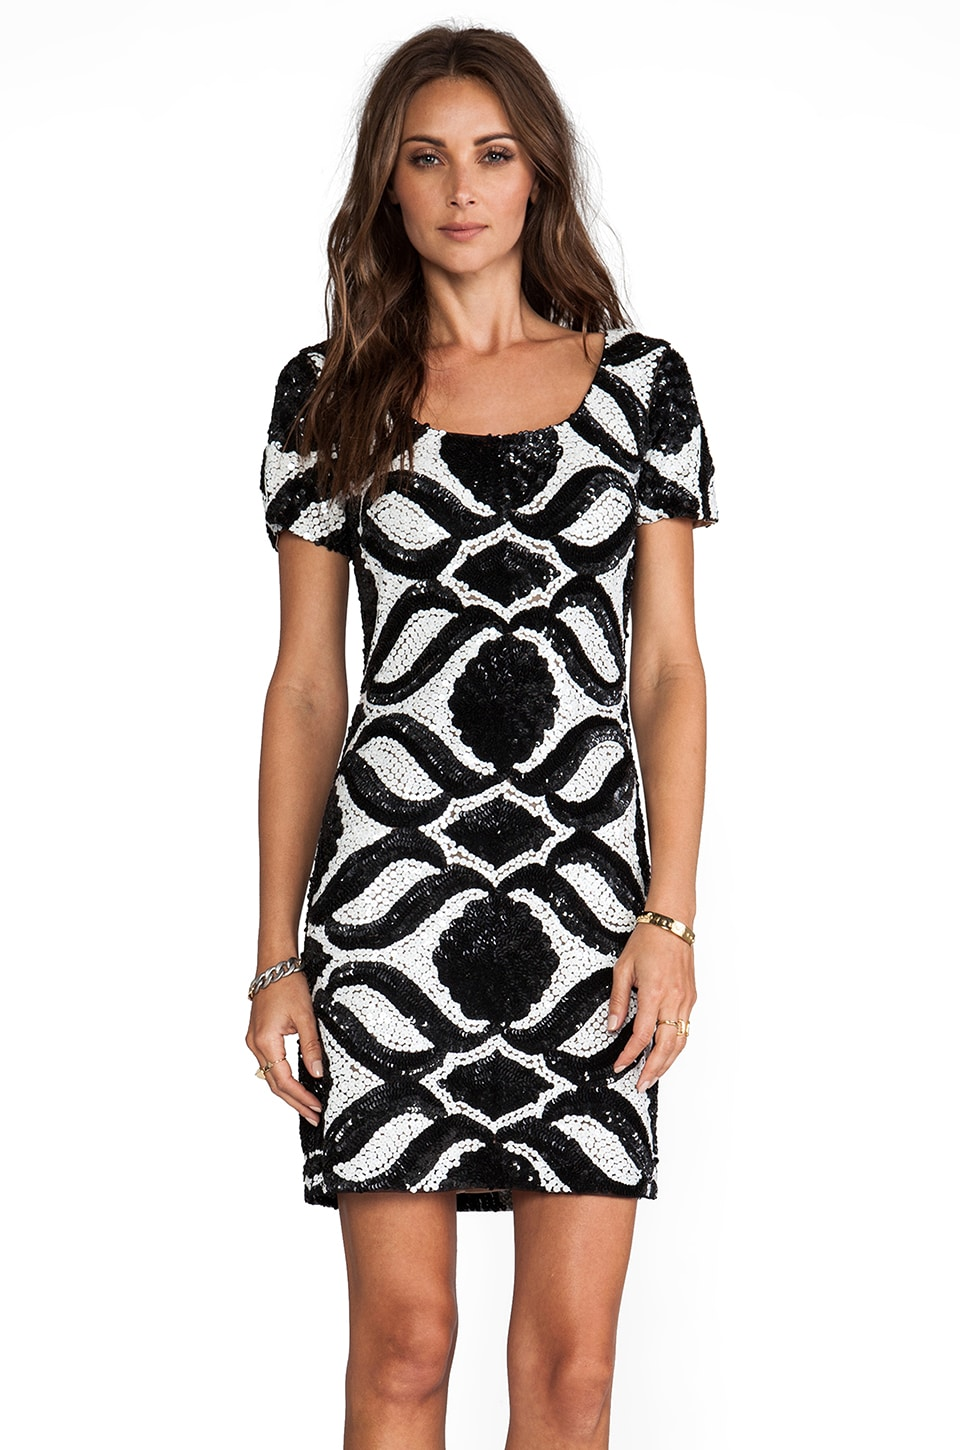 Tracy Reese Beaded Shifts Medallion Shift in Black/Ivory